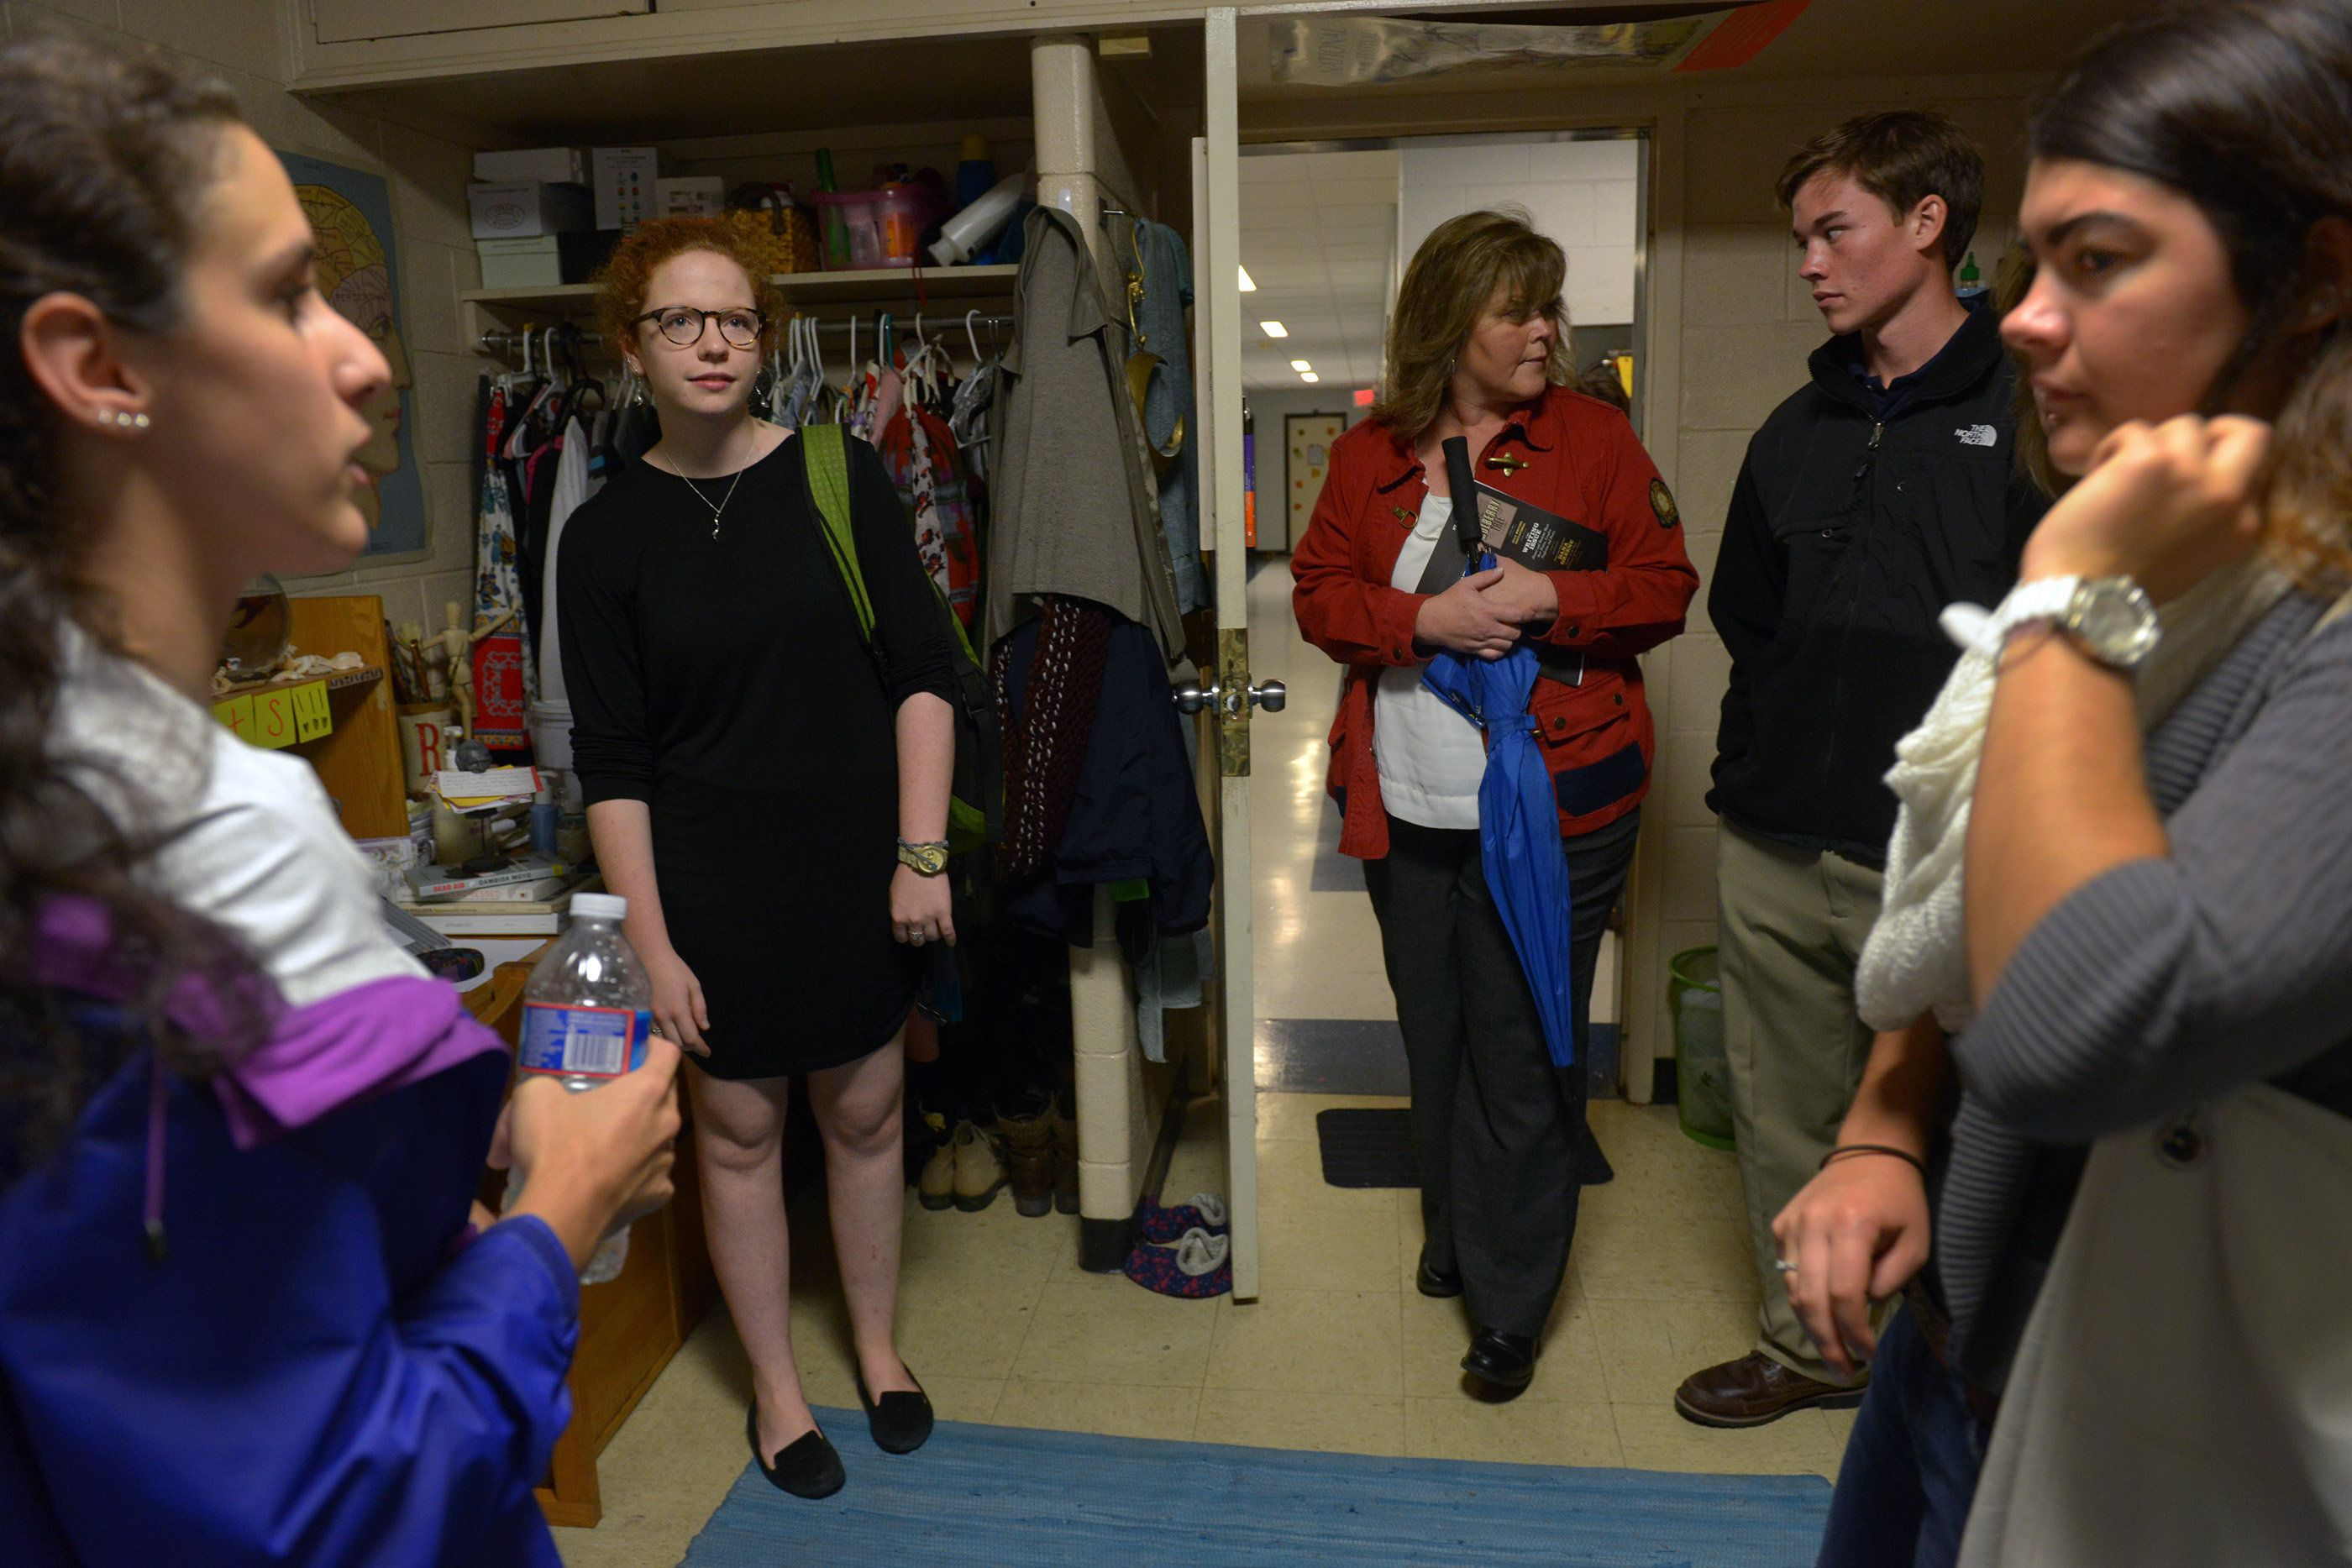 ST. MARY'S, MD	 - NOVEMBER 1: Sophomore Elaine Buckman, second left, hosts a tour of her dorm room as Bianca Calin, left, leads high school seniors Mike Dorsch, second right, and Alex Lucas, far right, through St. Mary's college with prospective enrollment in the balance on November, 01, 2013 in St. Mary's, MD.  Mike's mother, Diana Dorsch, is in red. (Photo by Bill O'Leary/The Washington Post via Getty Images)